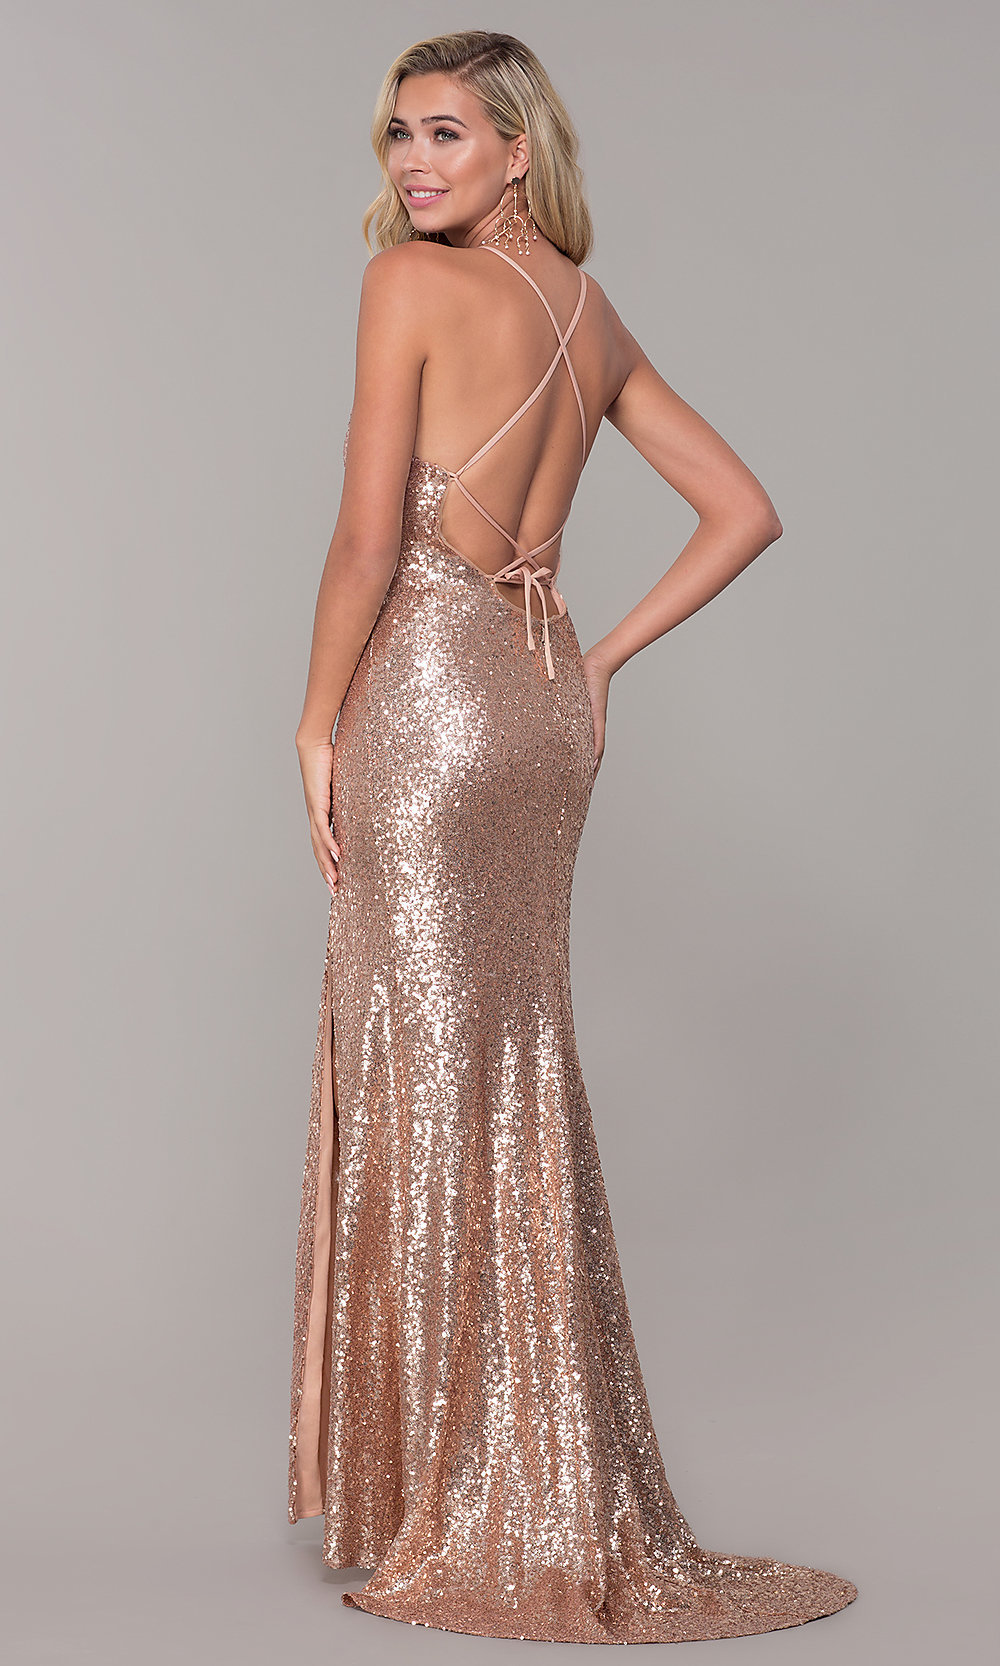 30a545fd Sparkly Long Formal Sequin Prom Dress with Corset